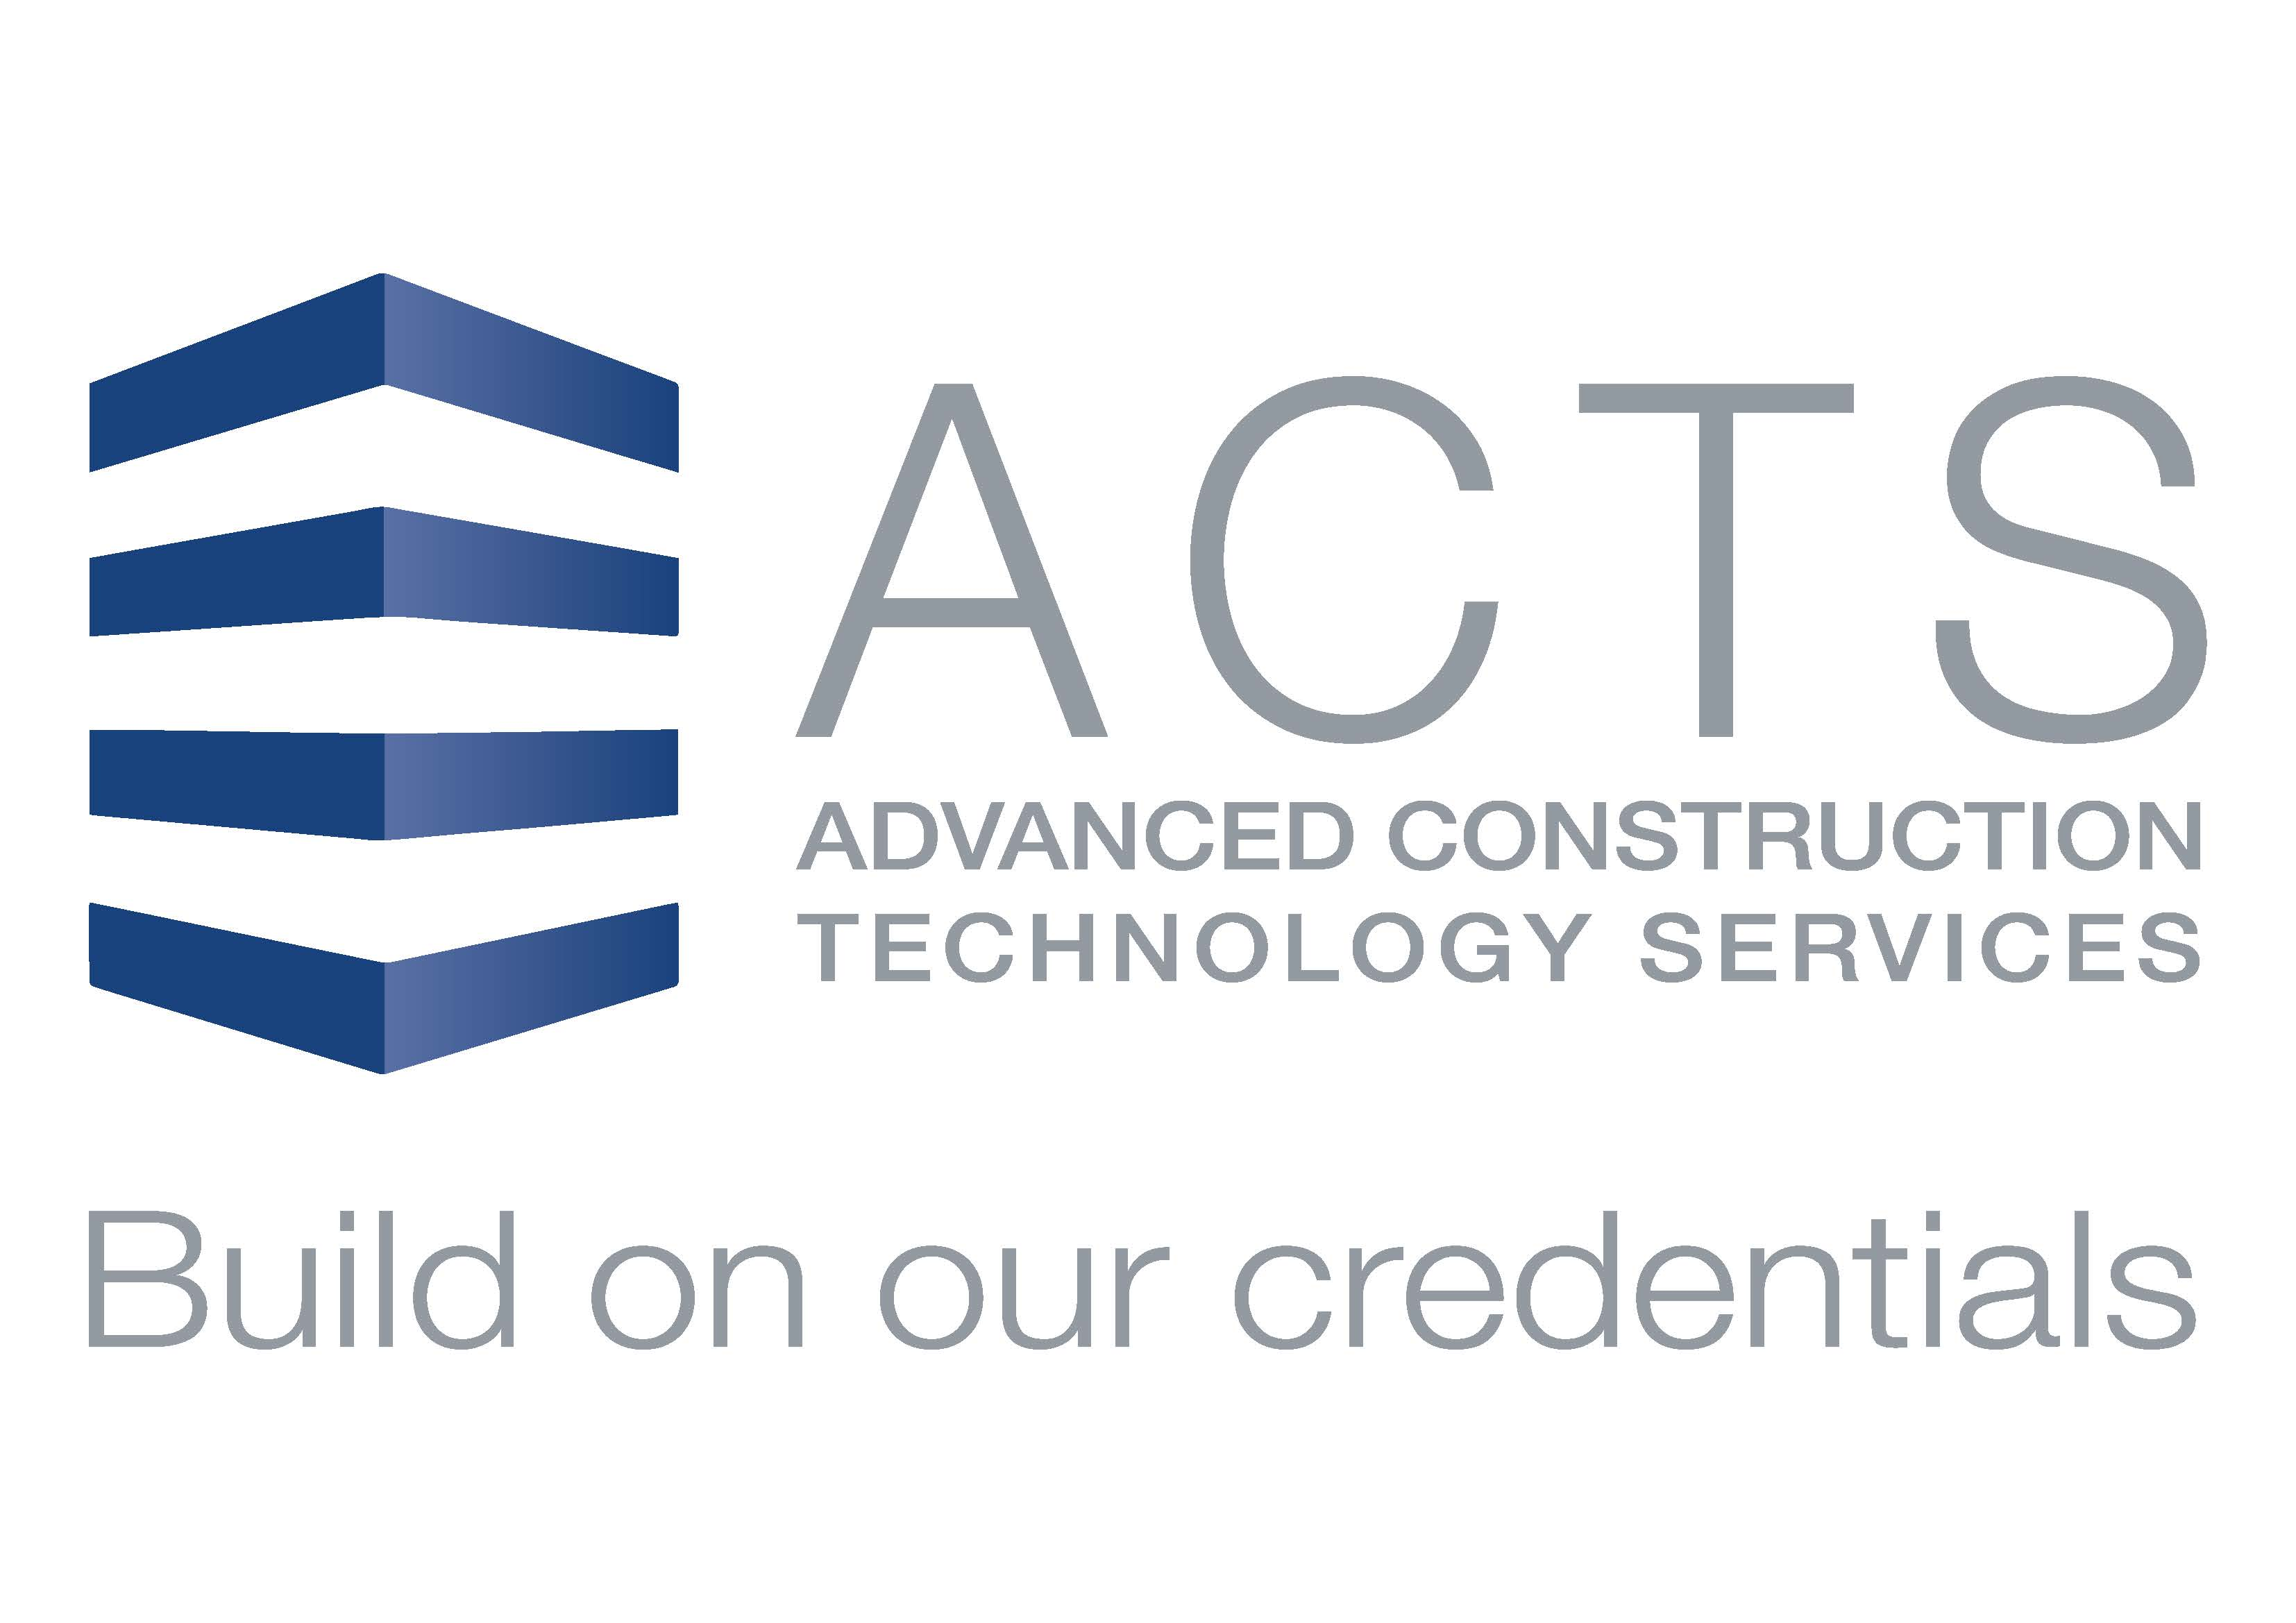 https://www.mncjobsgulf.com/company/advanced-construction-technology-services-1621407272